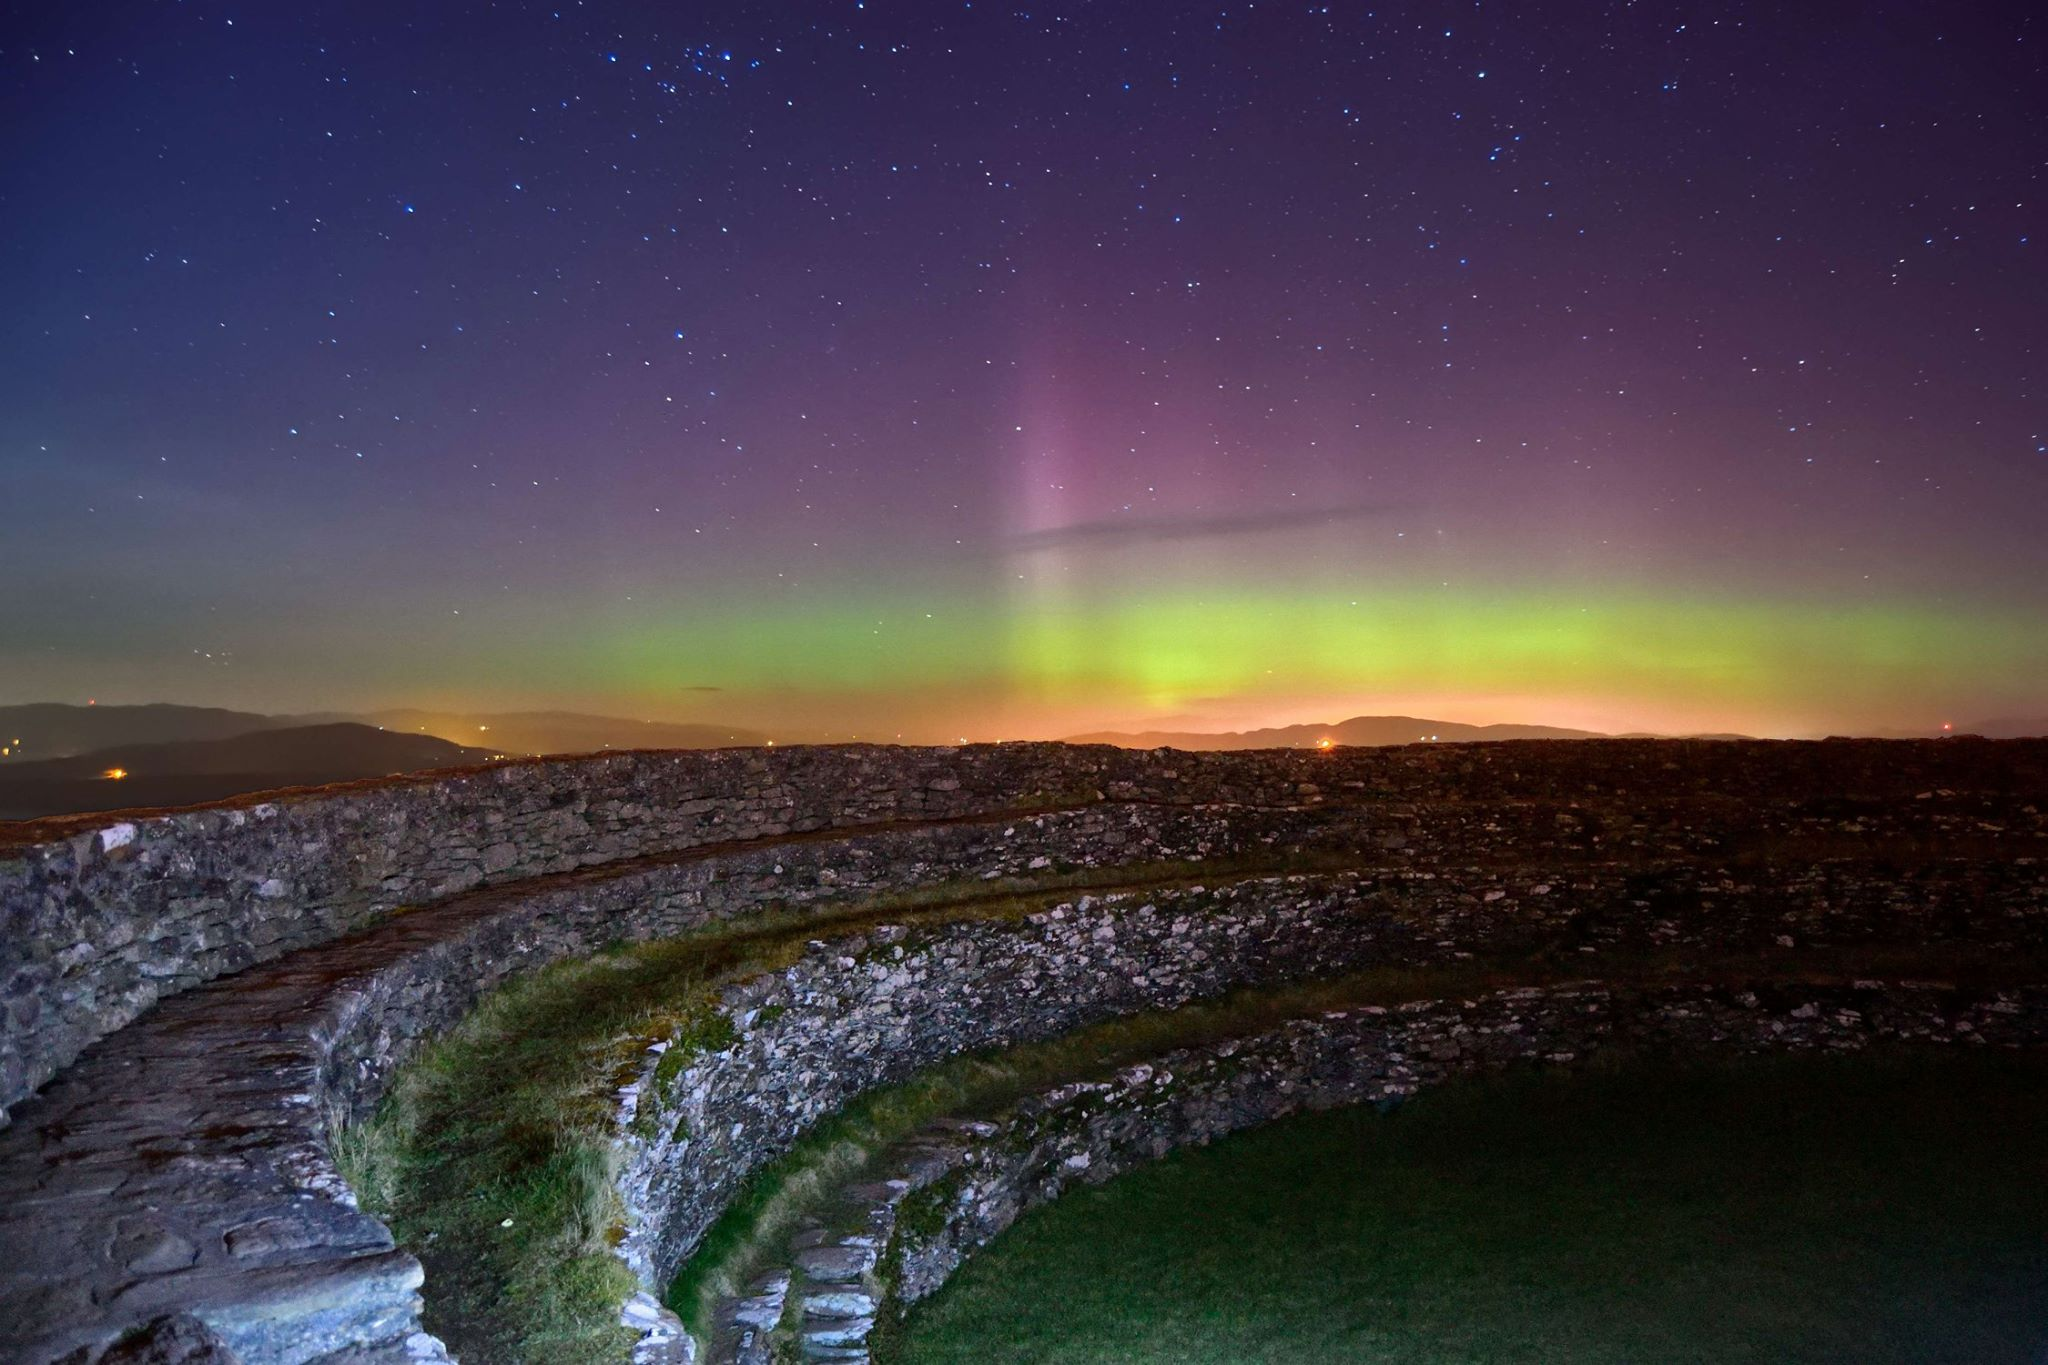 The Northern Lights from Grianan an Aileach, Burt, County Donegal